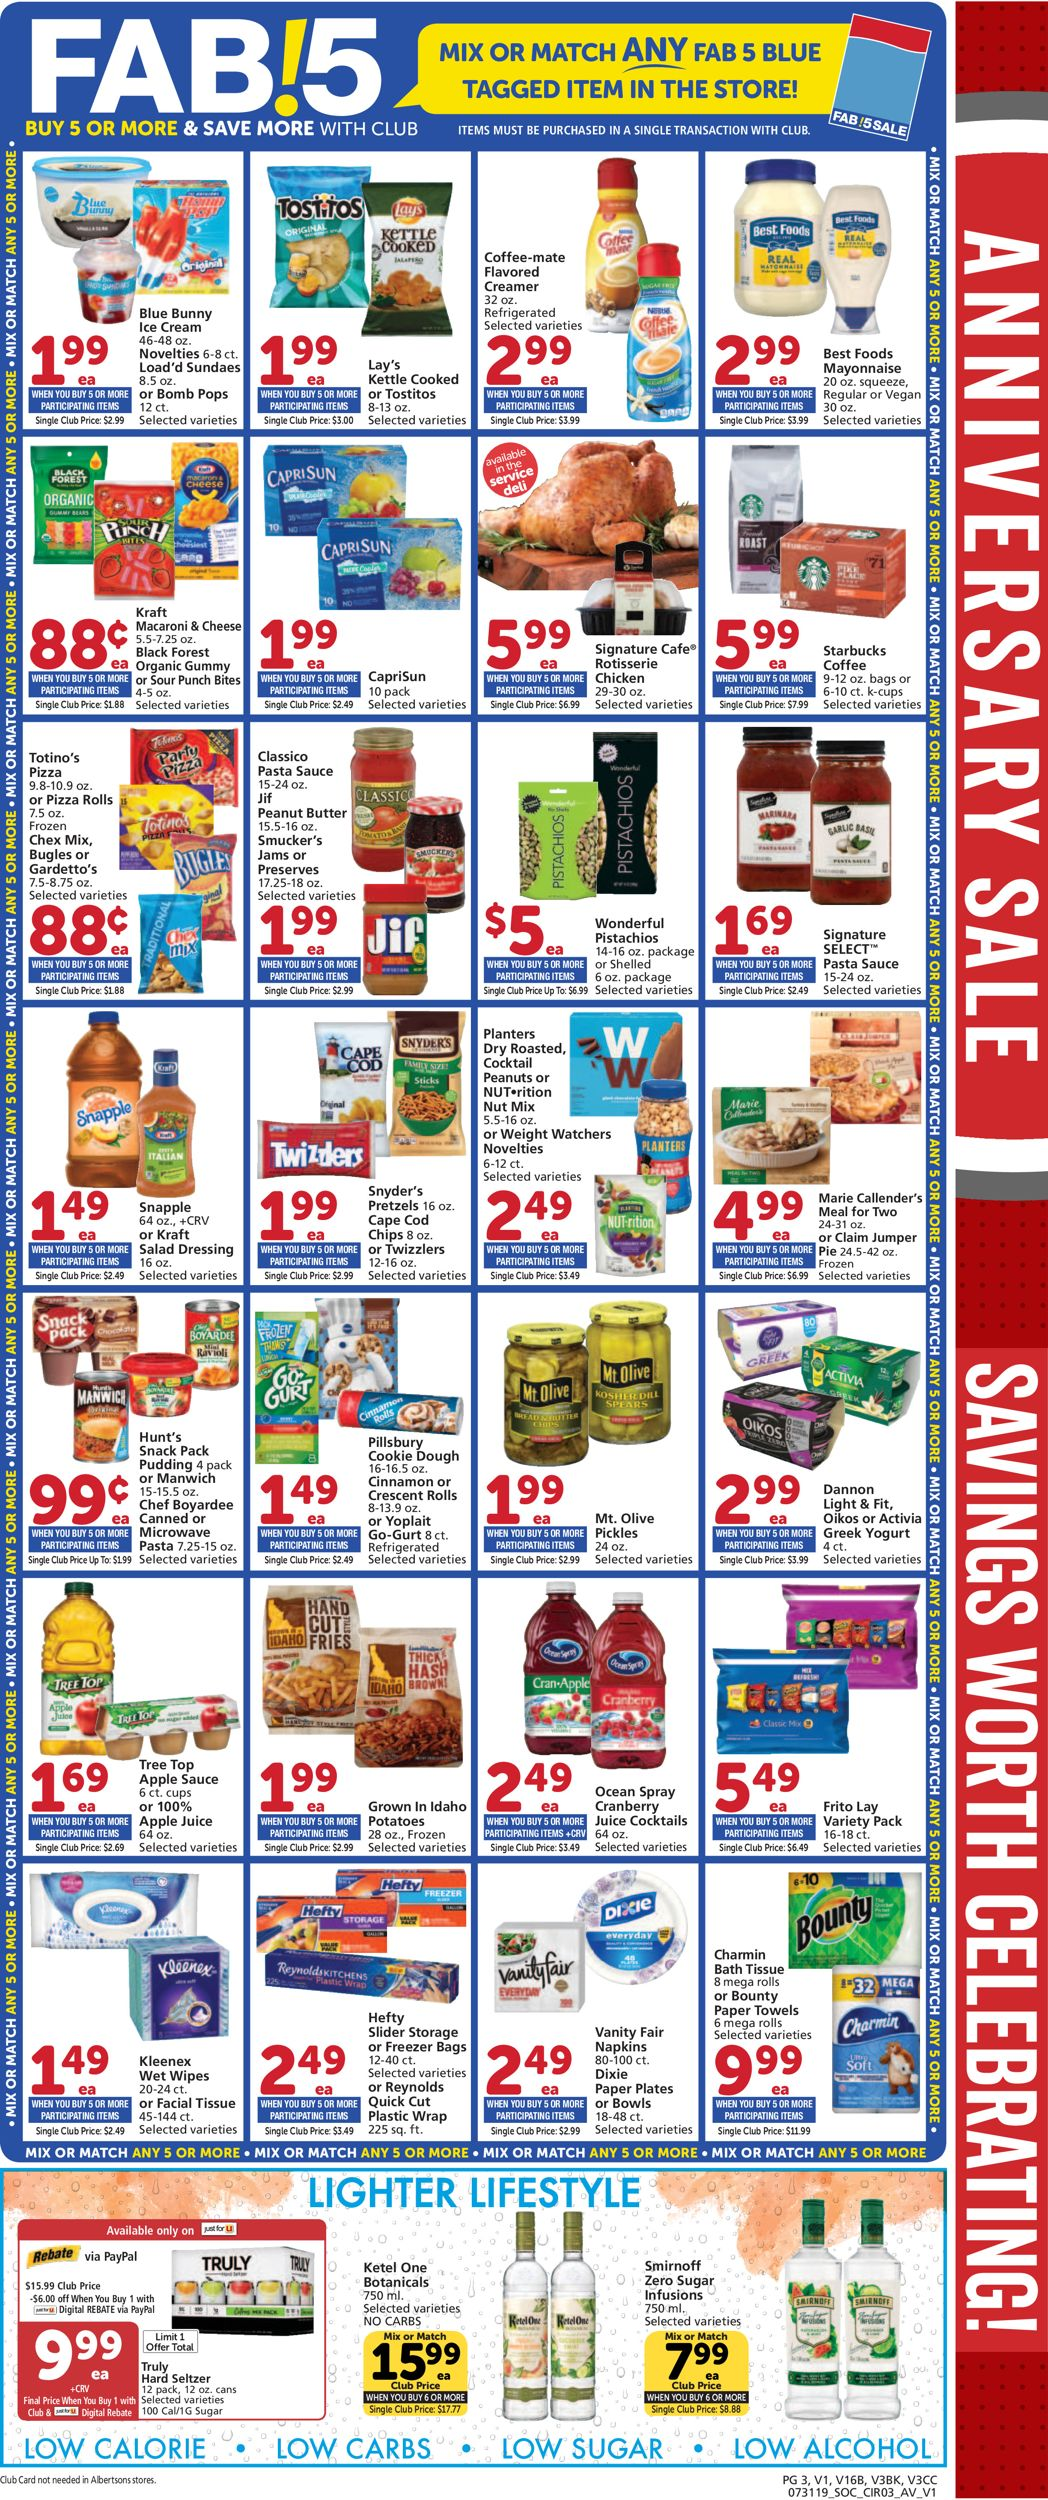 Vons Current weekly ad 07/31 - 08/06/2019 [4] - frequent-ads com